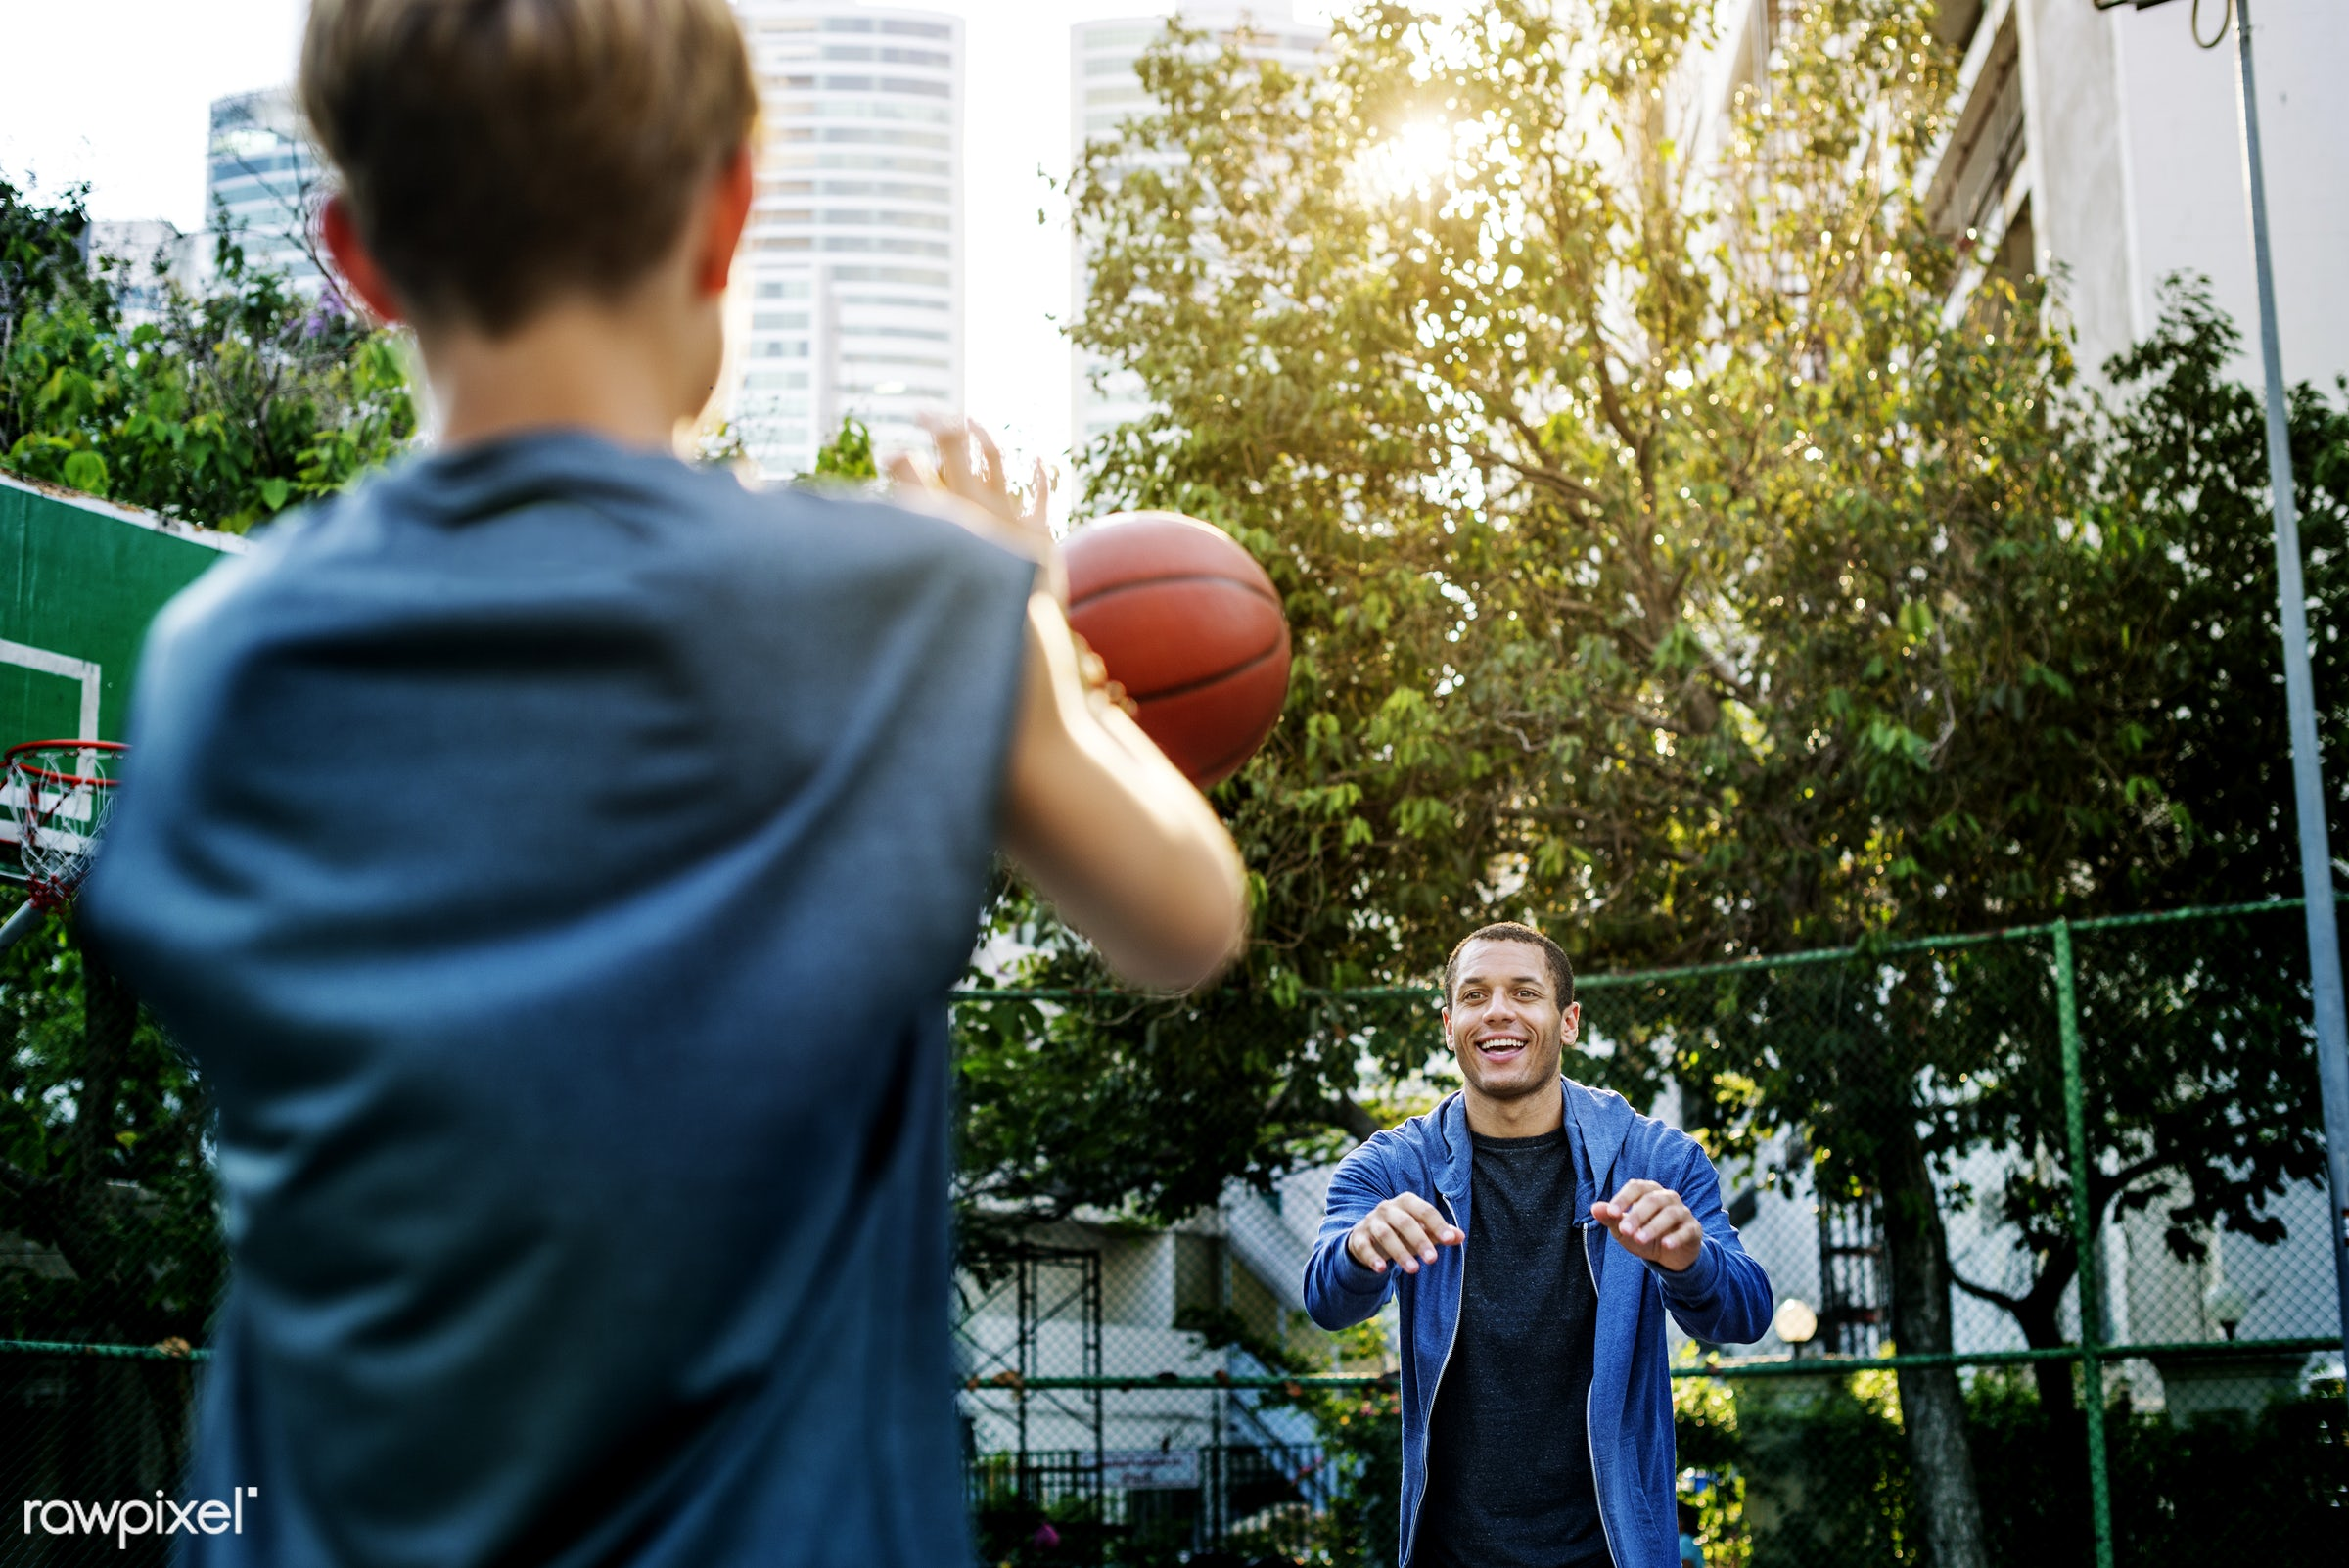 Young basketball player shoot - activity, basketball, boy, caucasian, exercise, game, man, play, player, practice, sport,...